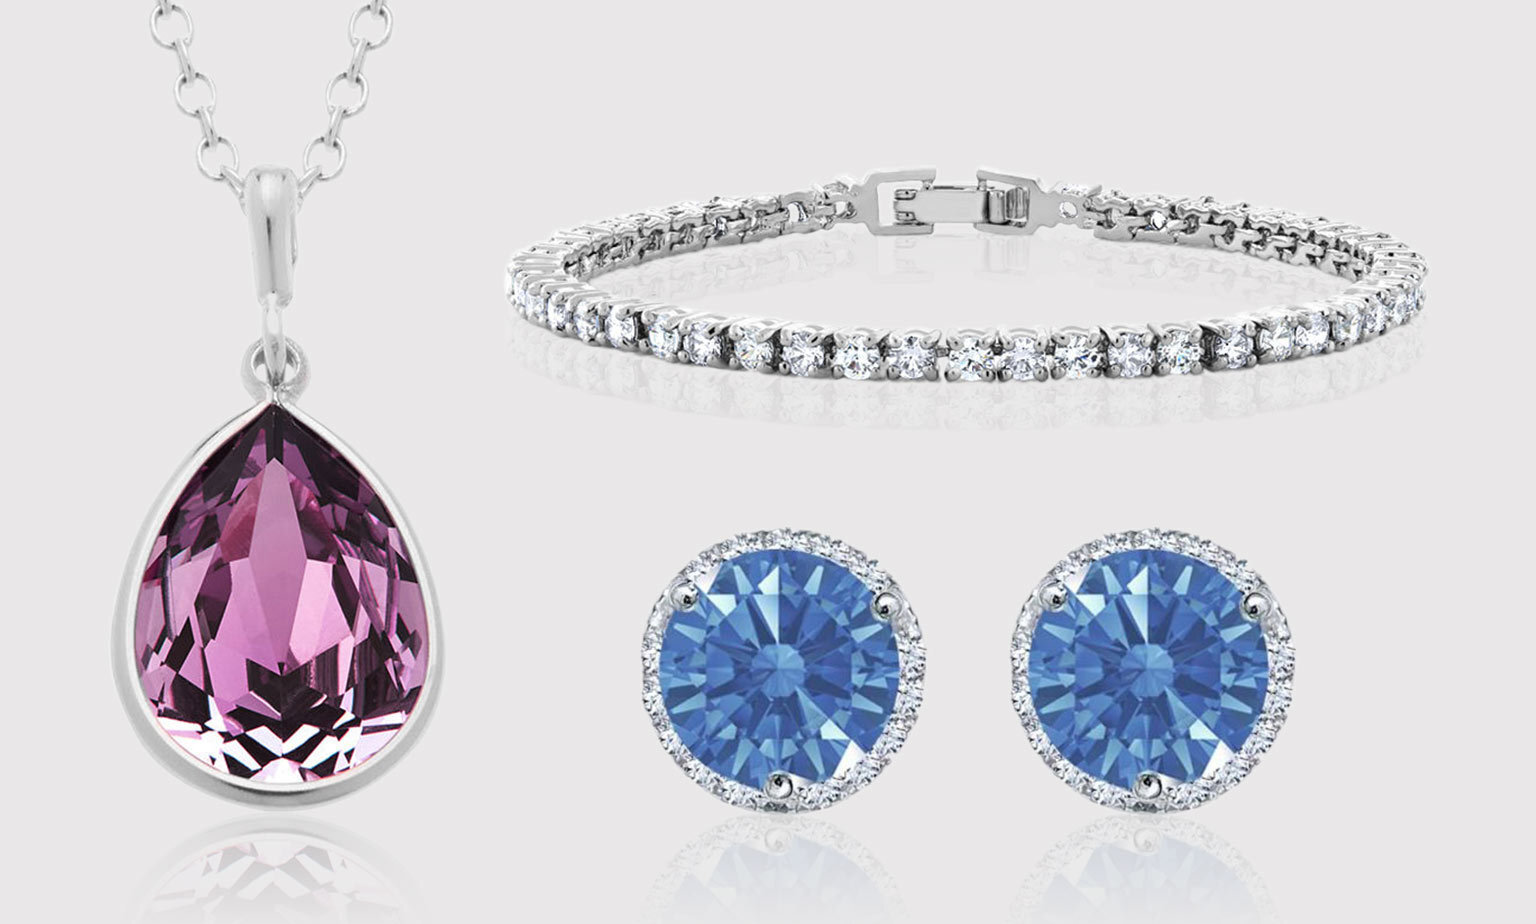 Up to 60% off Swarovski